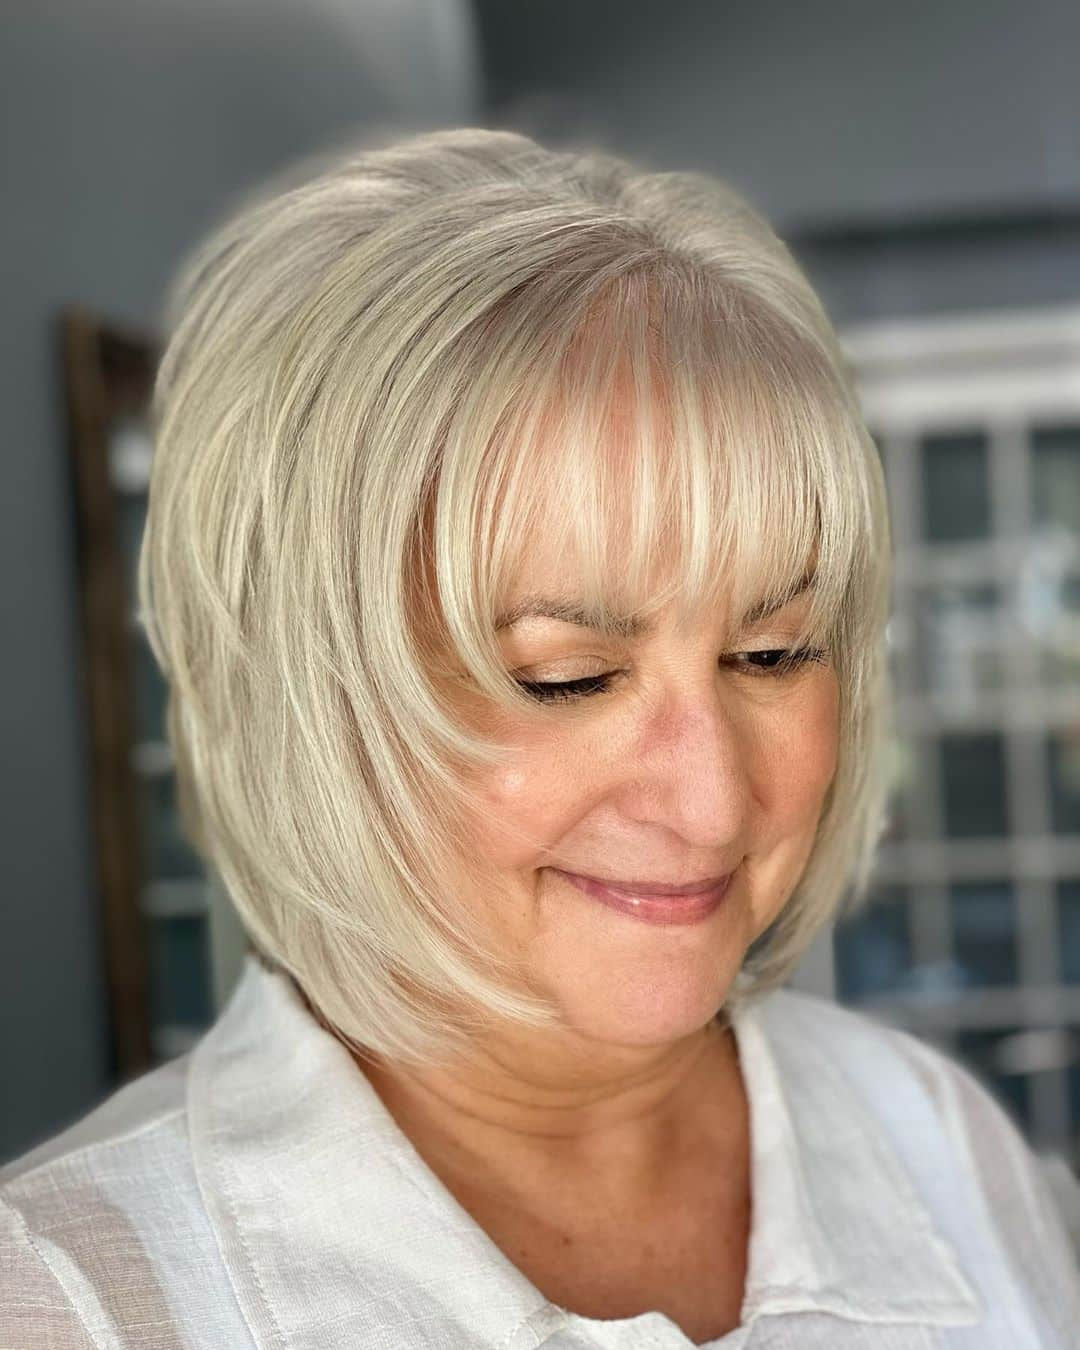 silver shaggy bob with bangs for fine hair ladies over 50